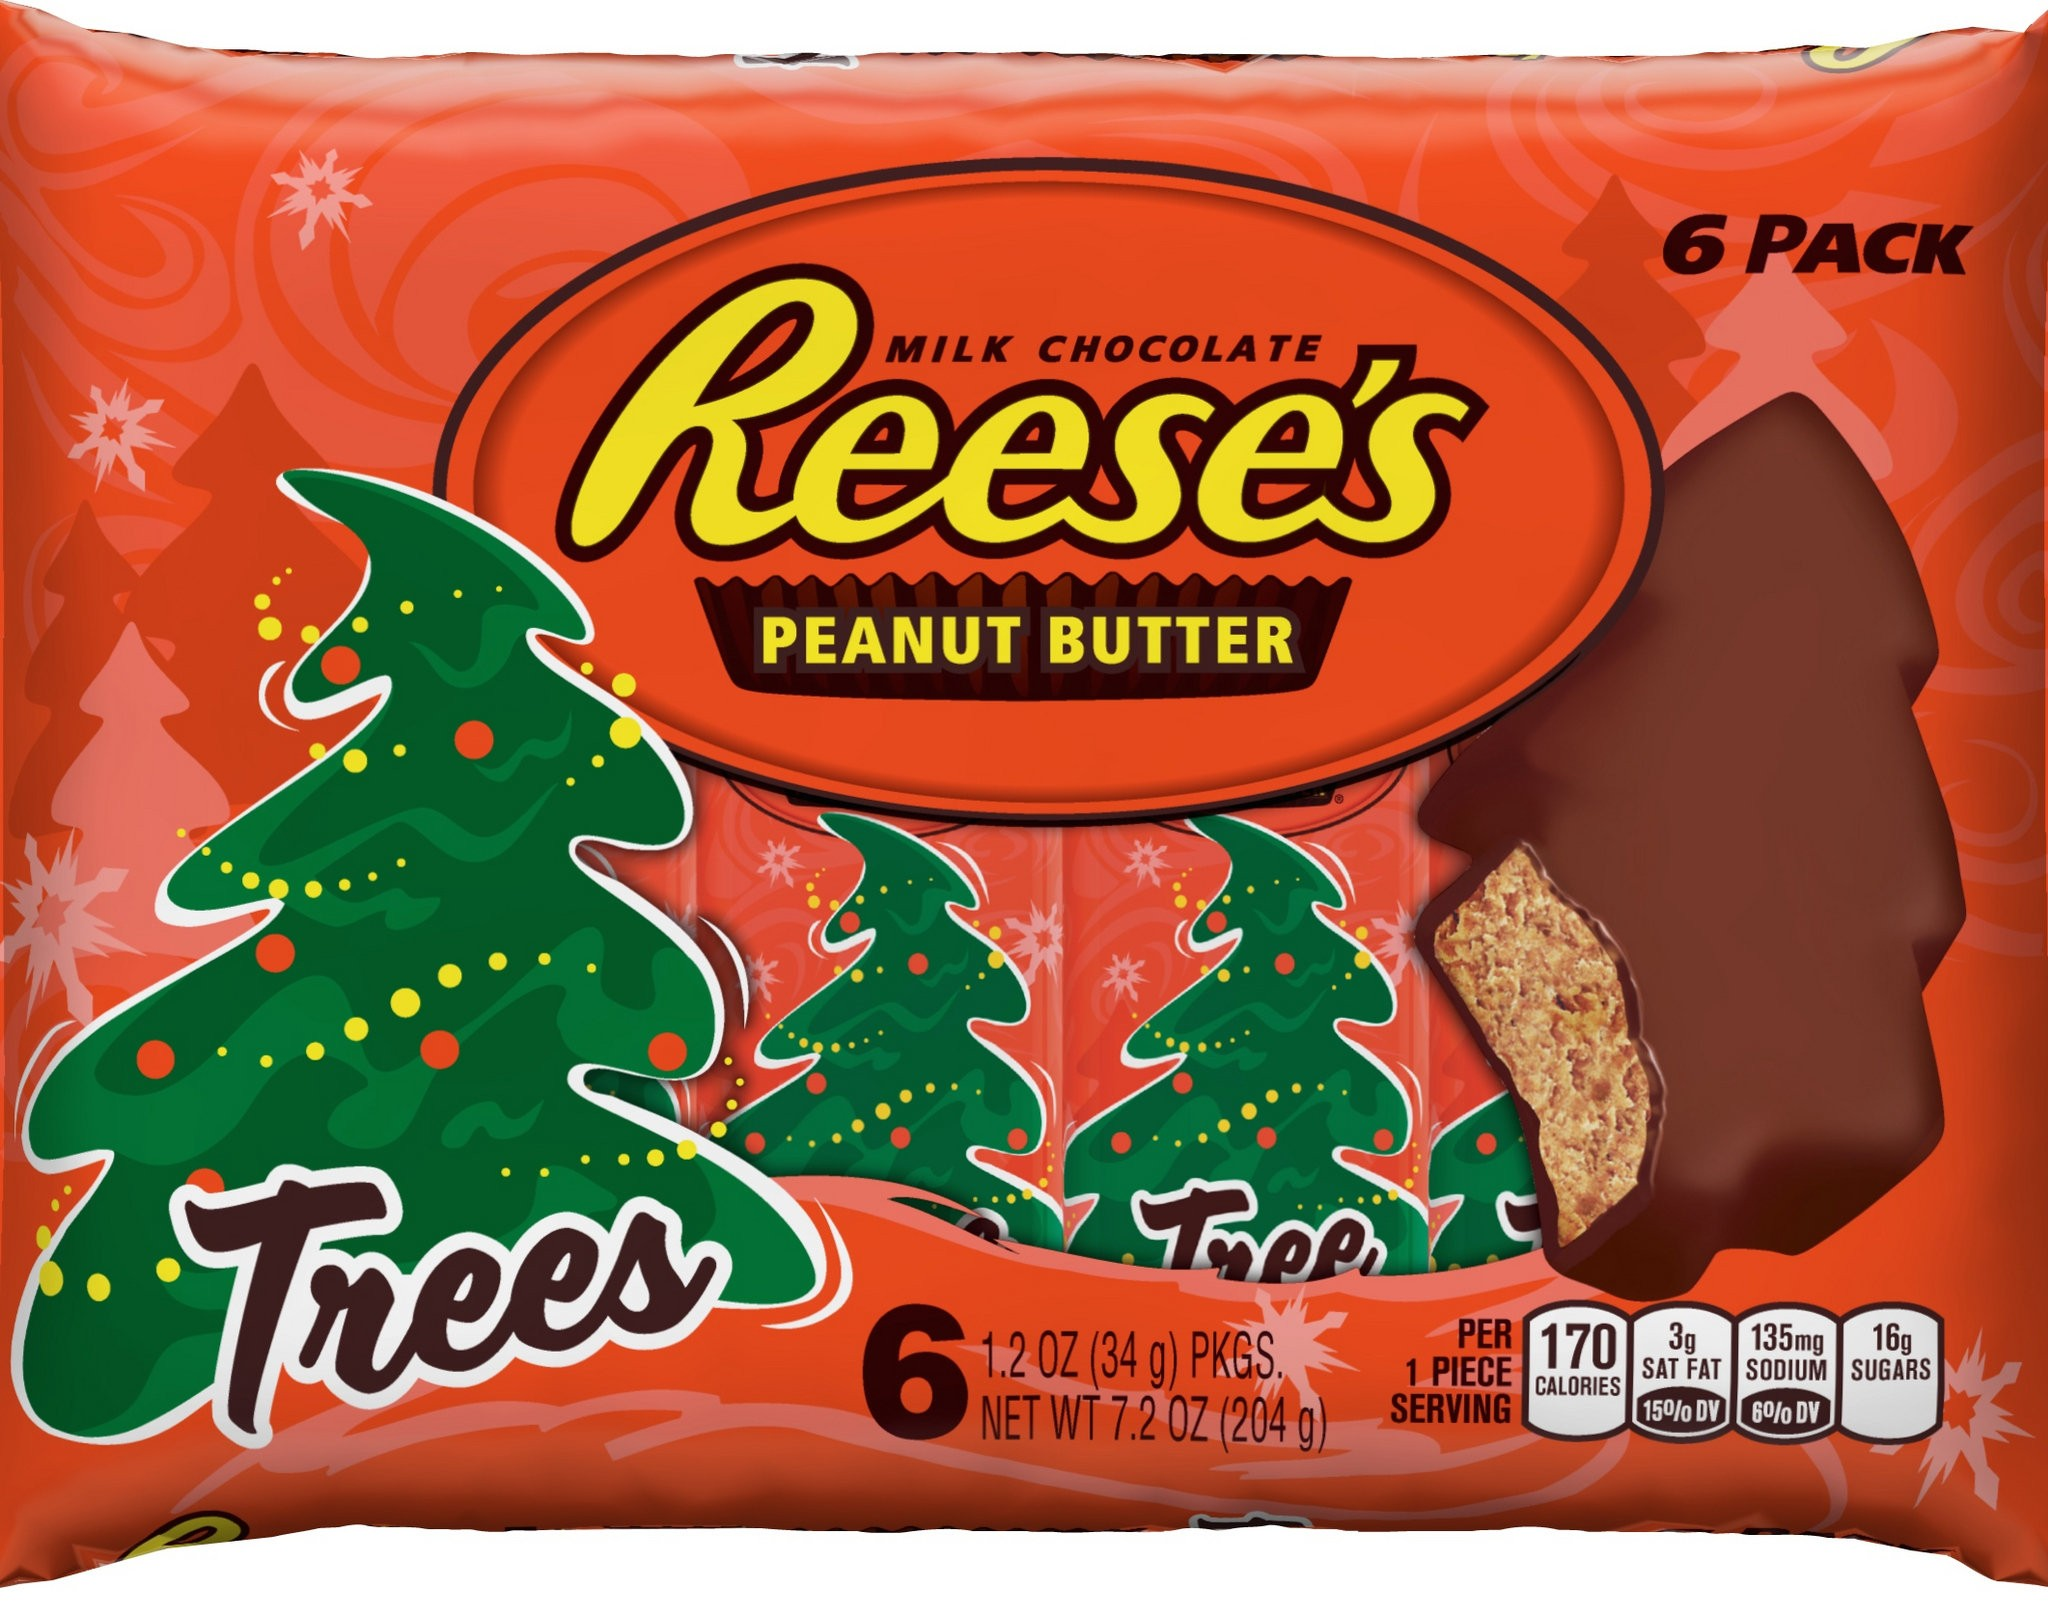 Reeses Christmas Tree Commercial 2020 Reese's Peanut Butter Cup trees are too blob like for some